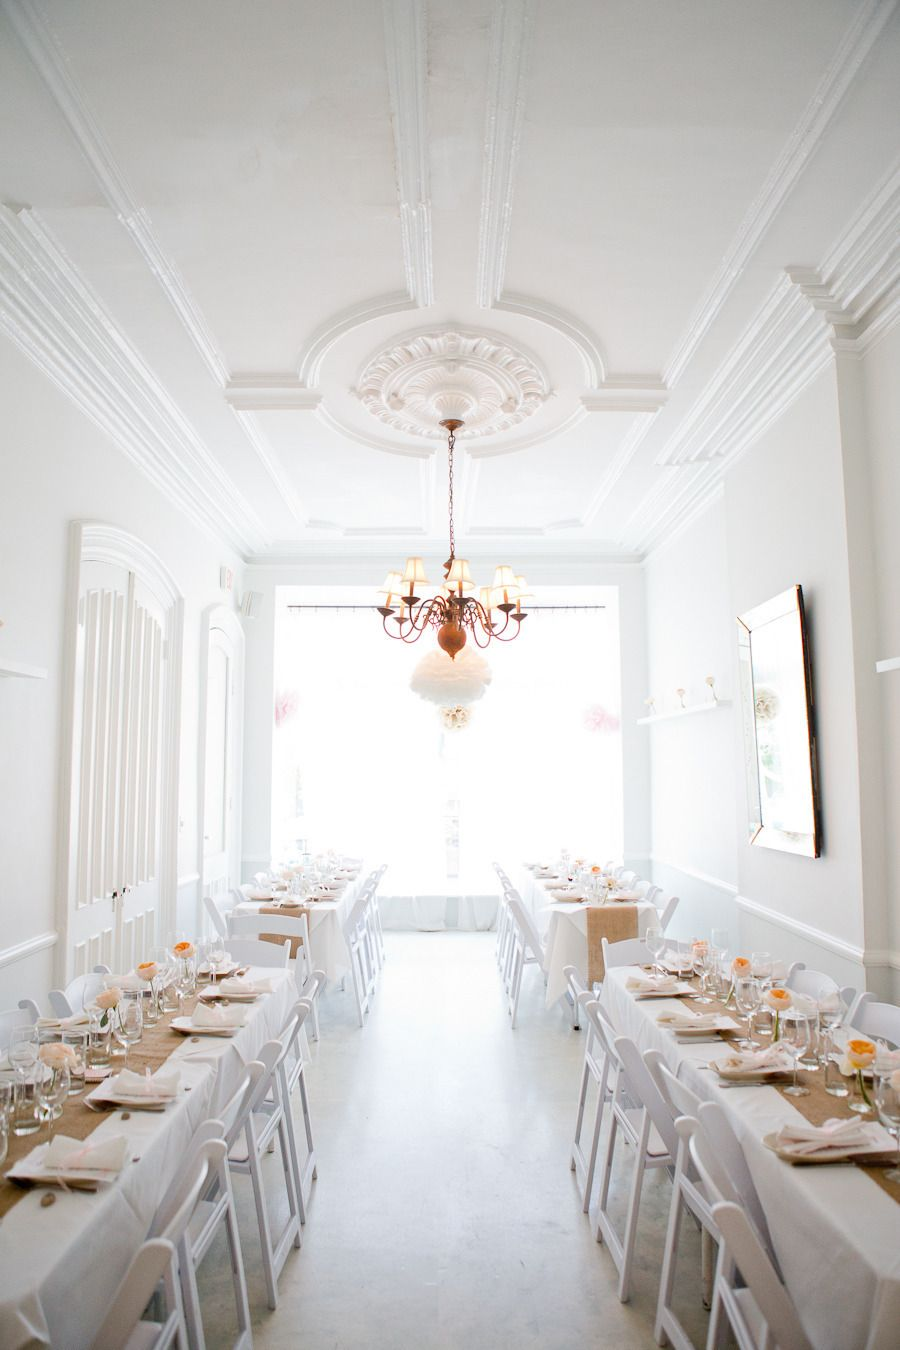 Wonderfully white washed | Brooklyn Wedding at ICI Restaurant from Melissa Kruse Photography  Read more - http://www.stylemepretty.com/new-york-weddings/2013/09/26/brooklyn-wedding-at-ici-restaurant-from-melissa-kruse-photography/